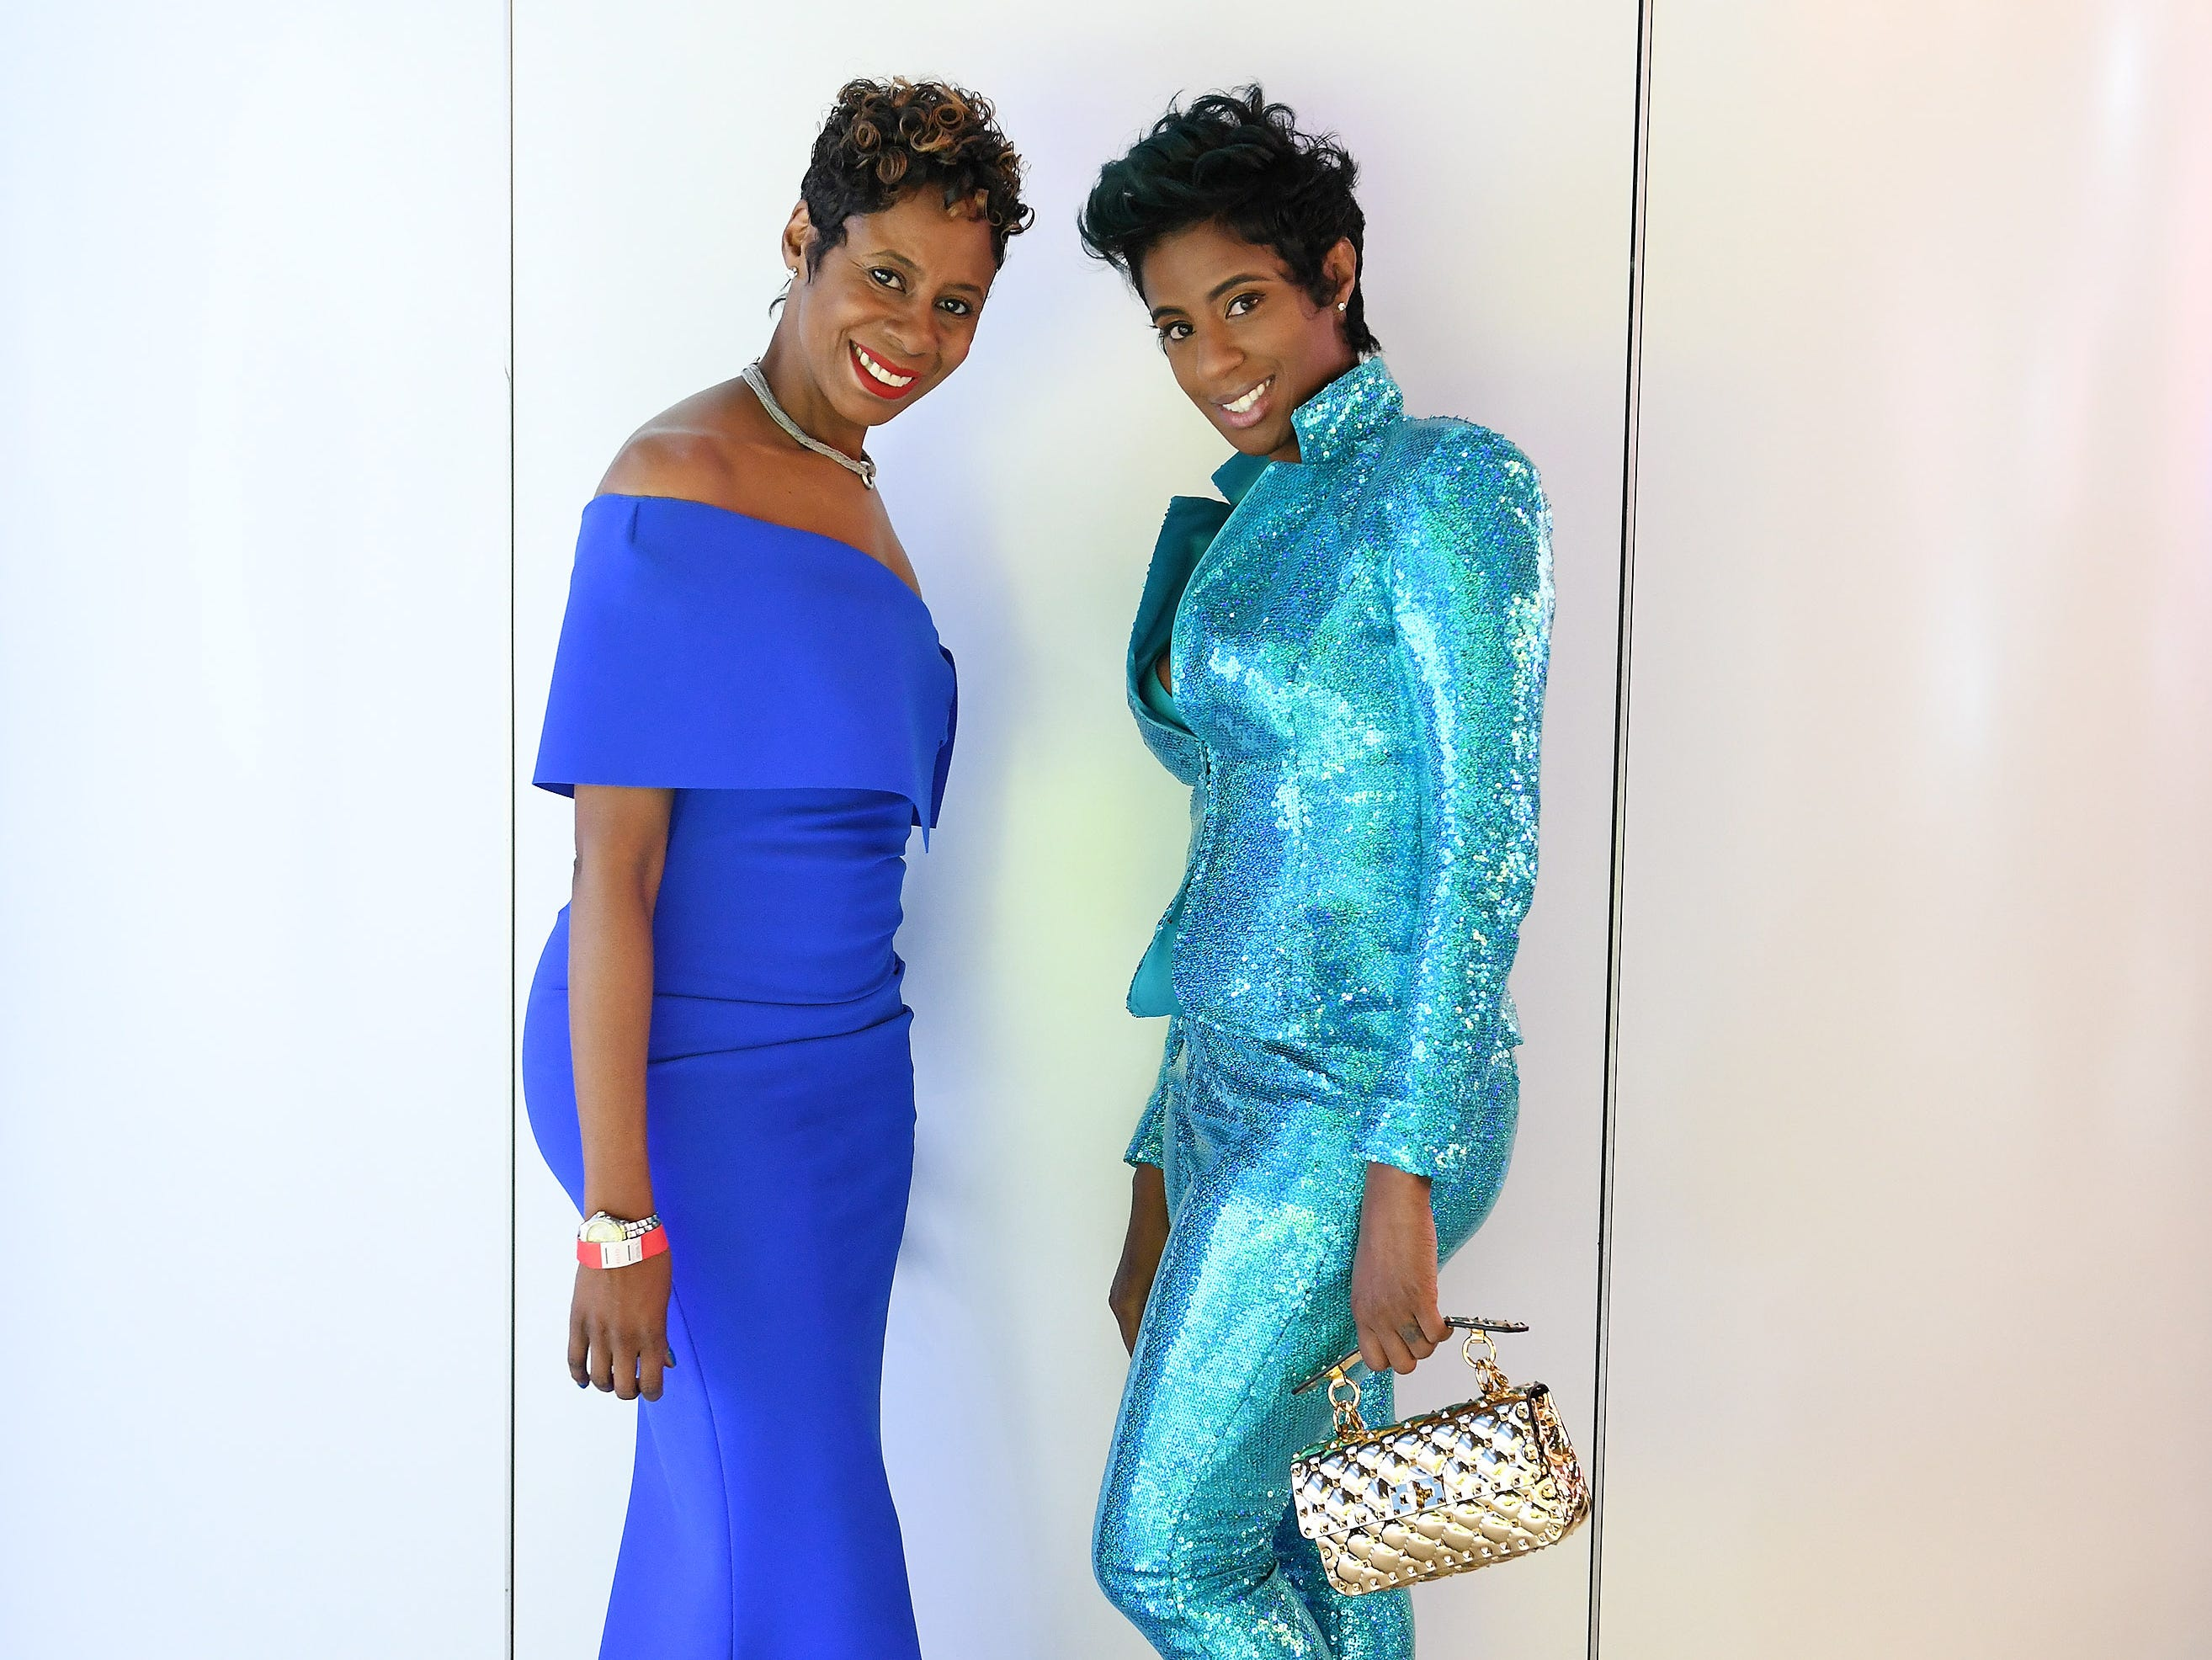 Attorney Tanisha Davis, left, and her cousin, Felicia Turner of Shelby Township, are dressed to dazzle at the auto show's Charity Preview.